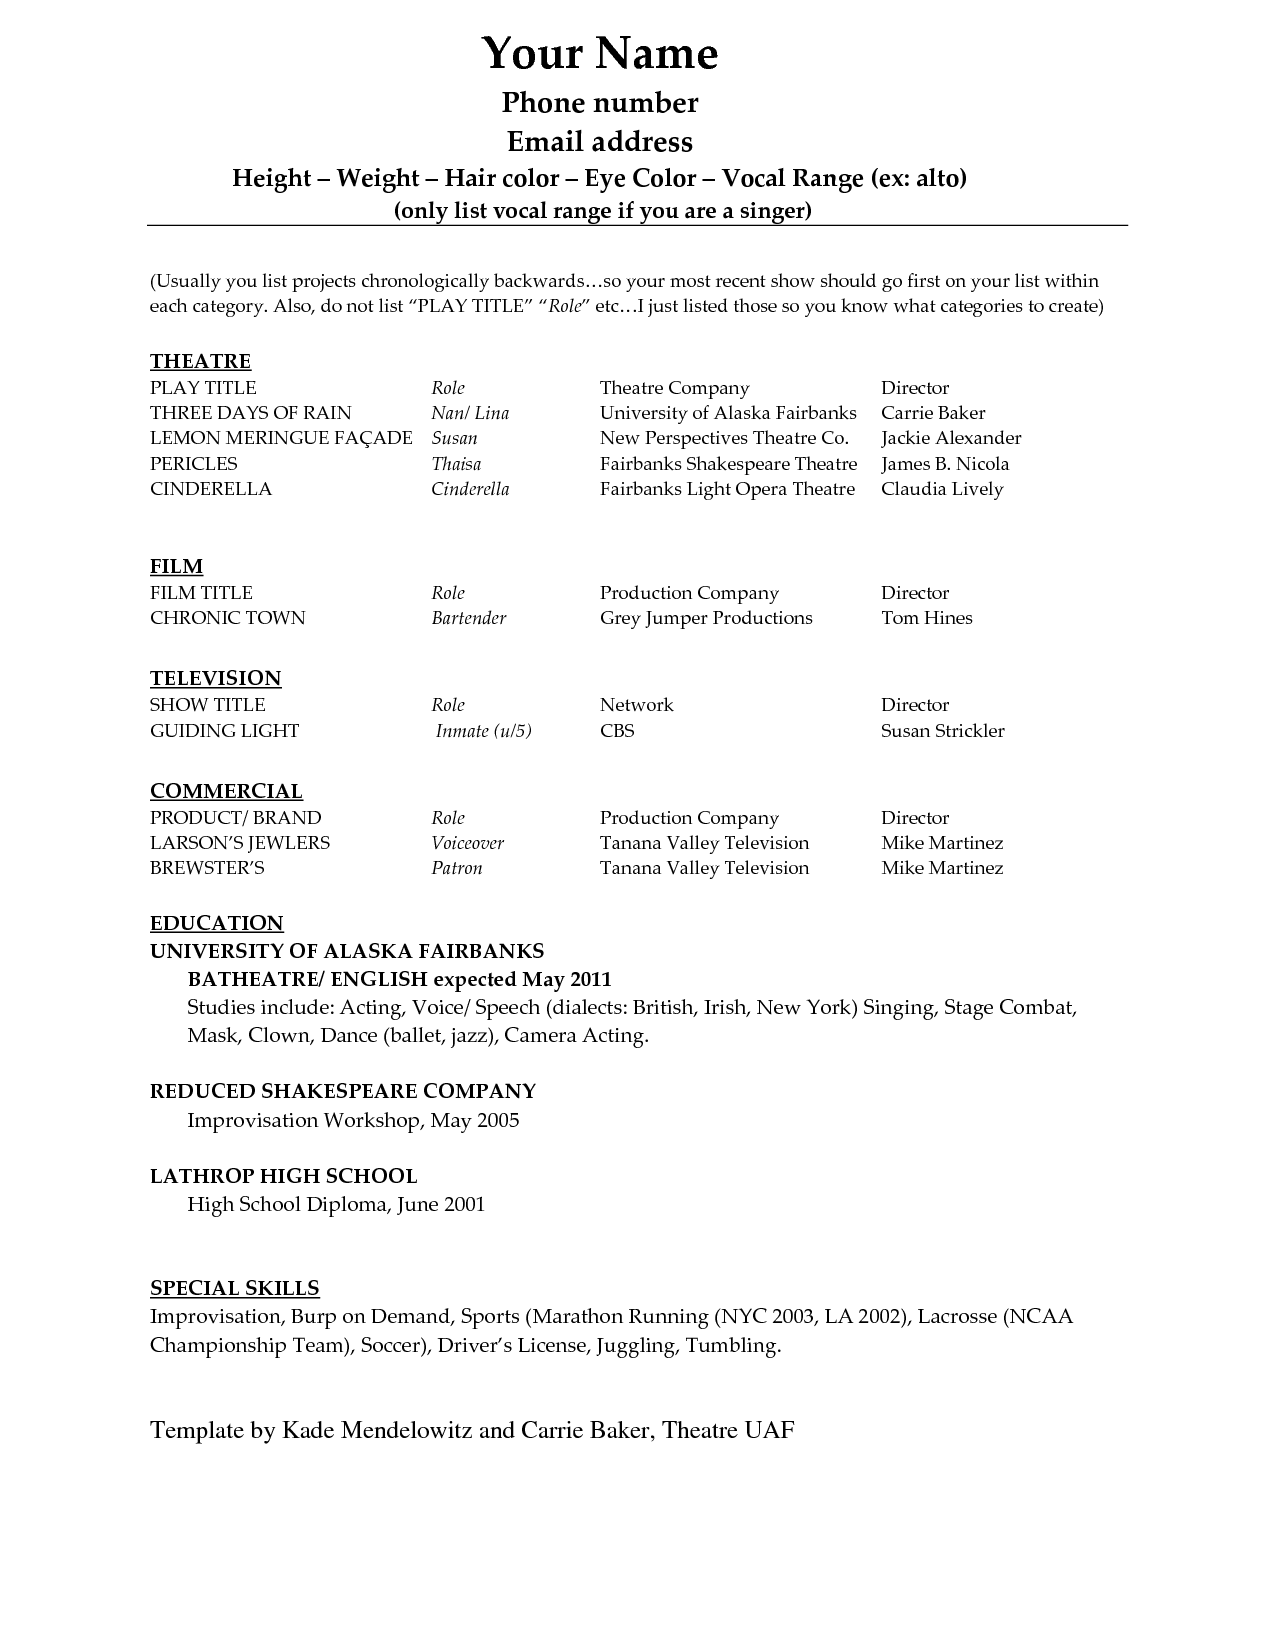 acting resume template download free httpwwwresumecareerinfo - Download Resume Template Microsoft Word